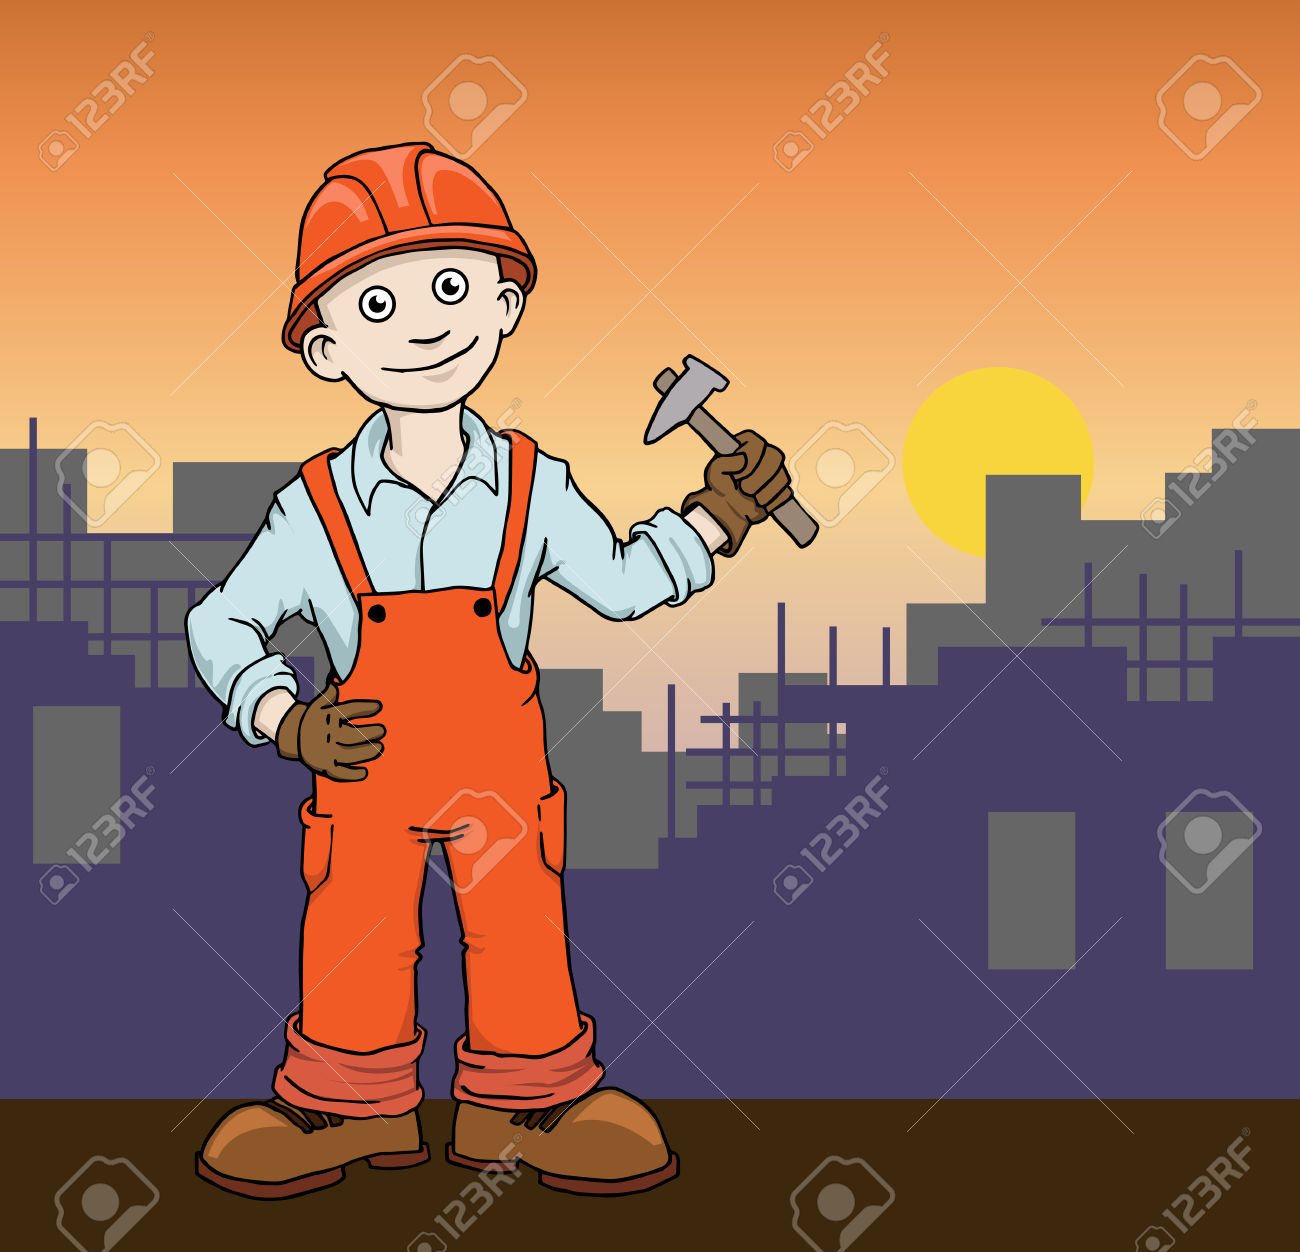 Cute construction site clipart graphic free download Cute Cartoon Construction Worker Repairman On The Building Site ... graphic free download